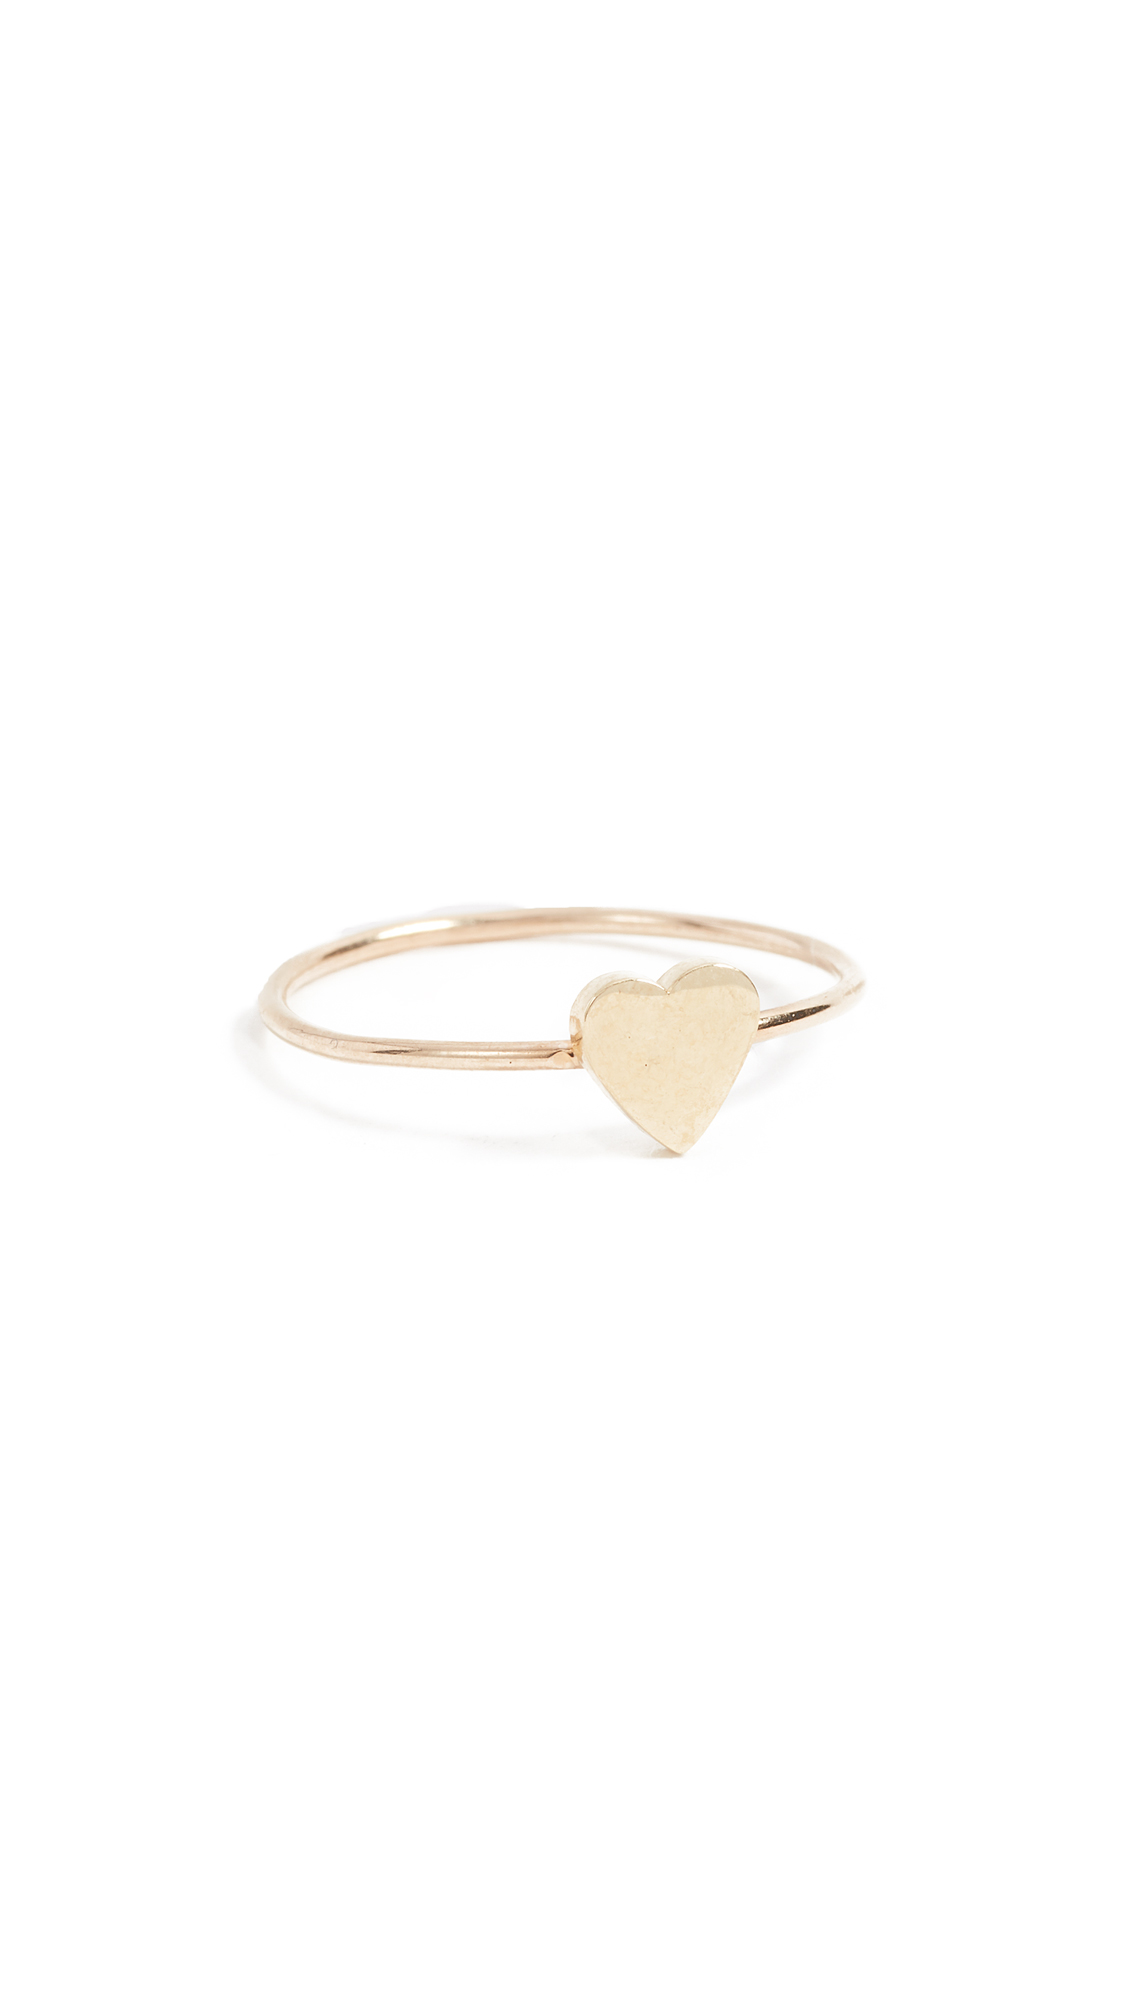 Jennifer Meyer Jewelry 18k Gold Mini Heart Ring - Gold